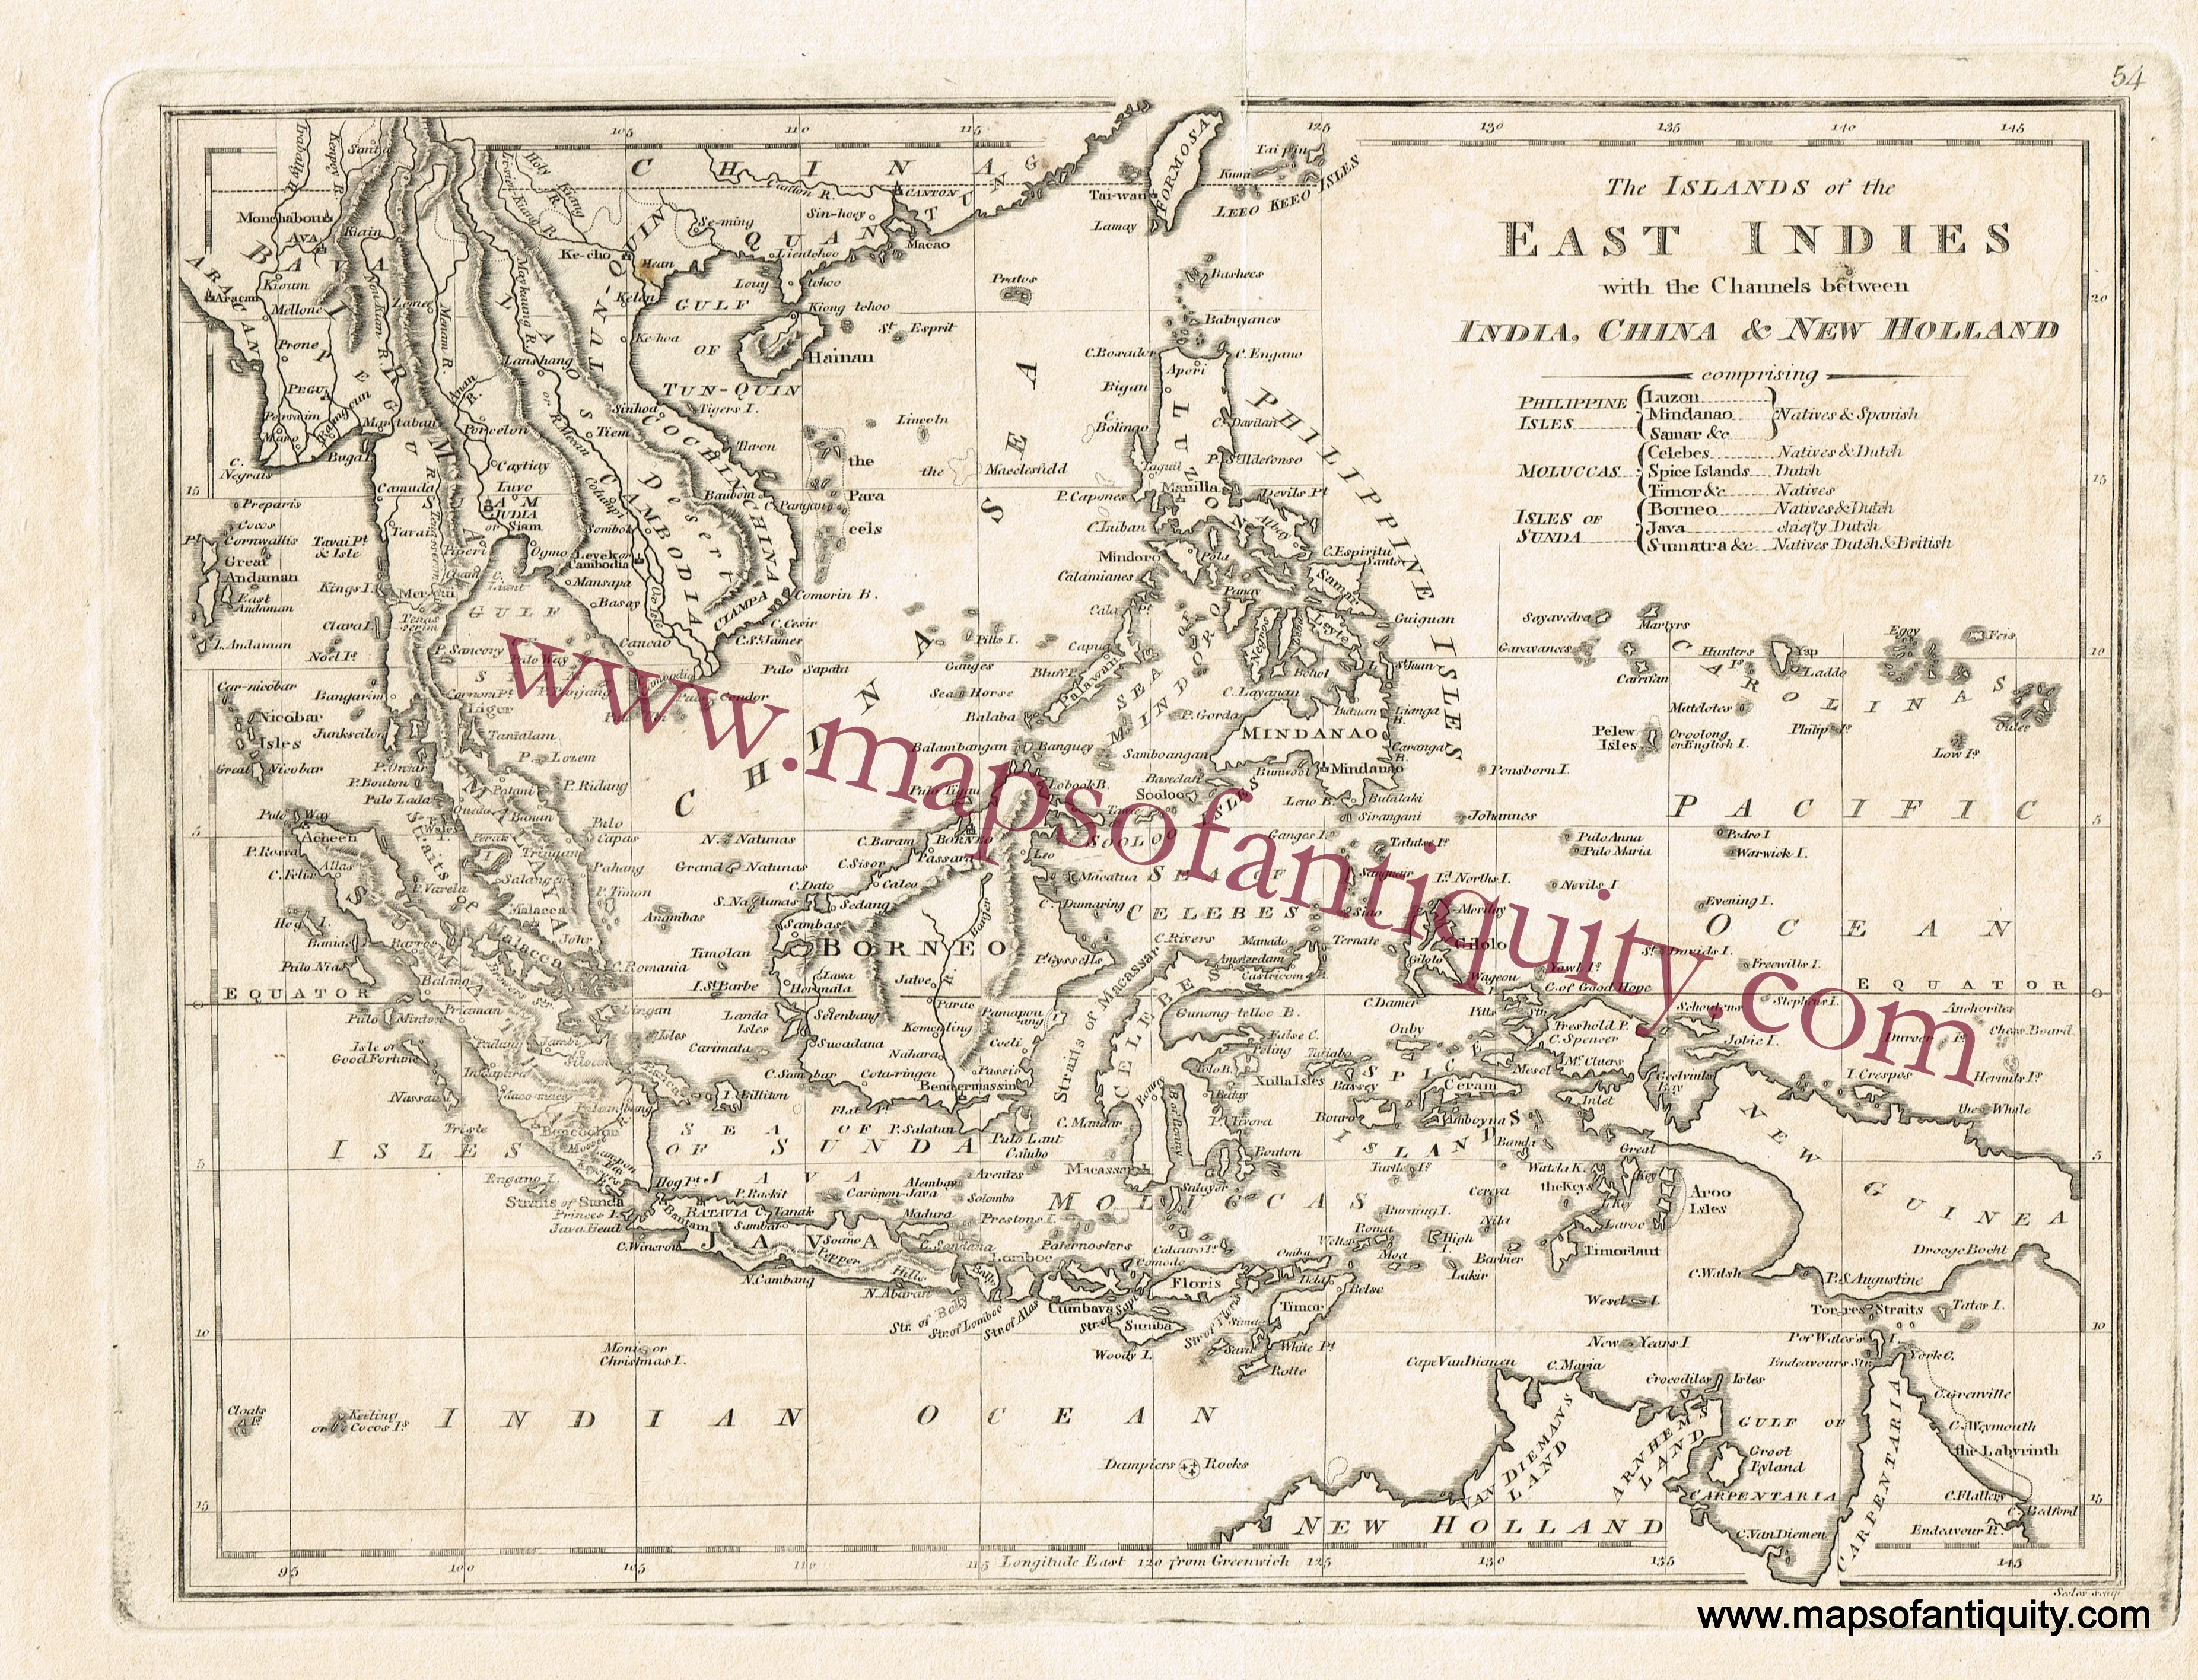 antique 1814 map of the islands of the east indies with the channels in